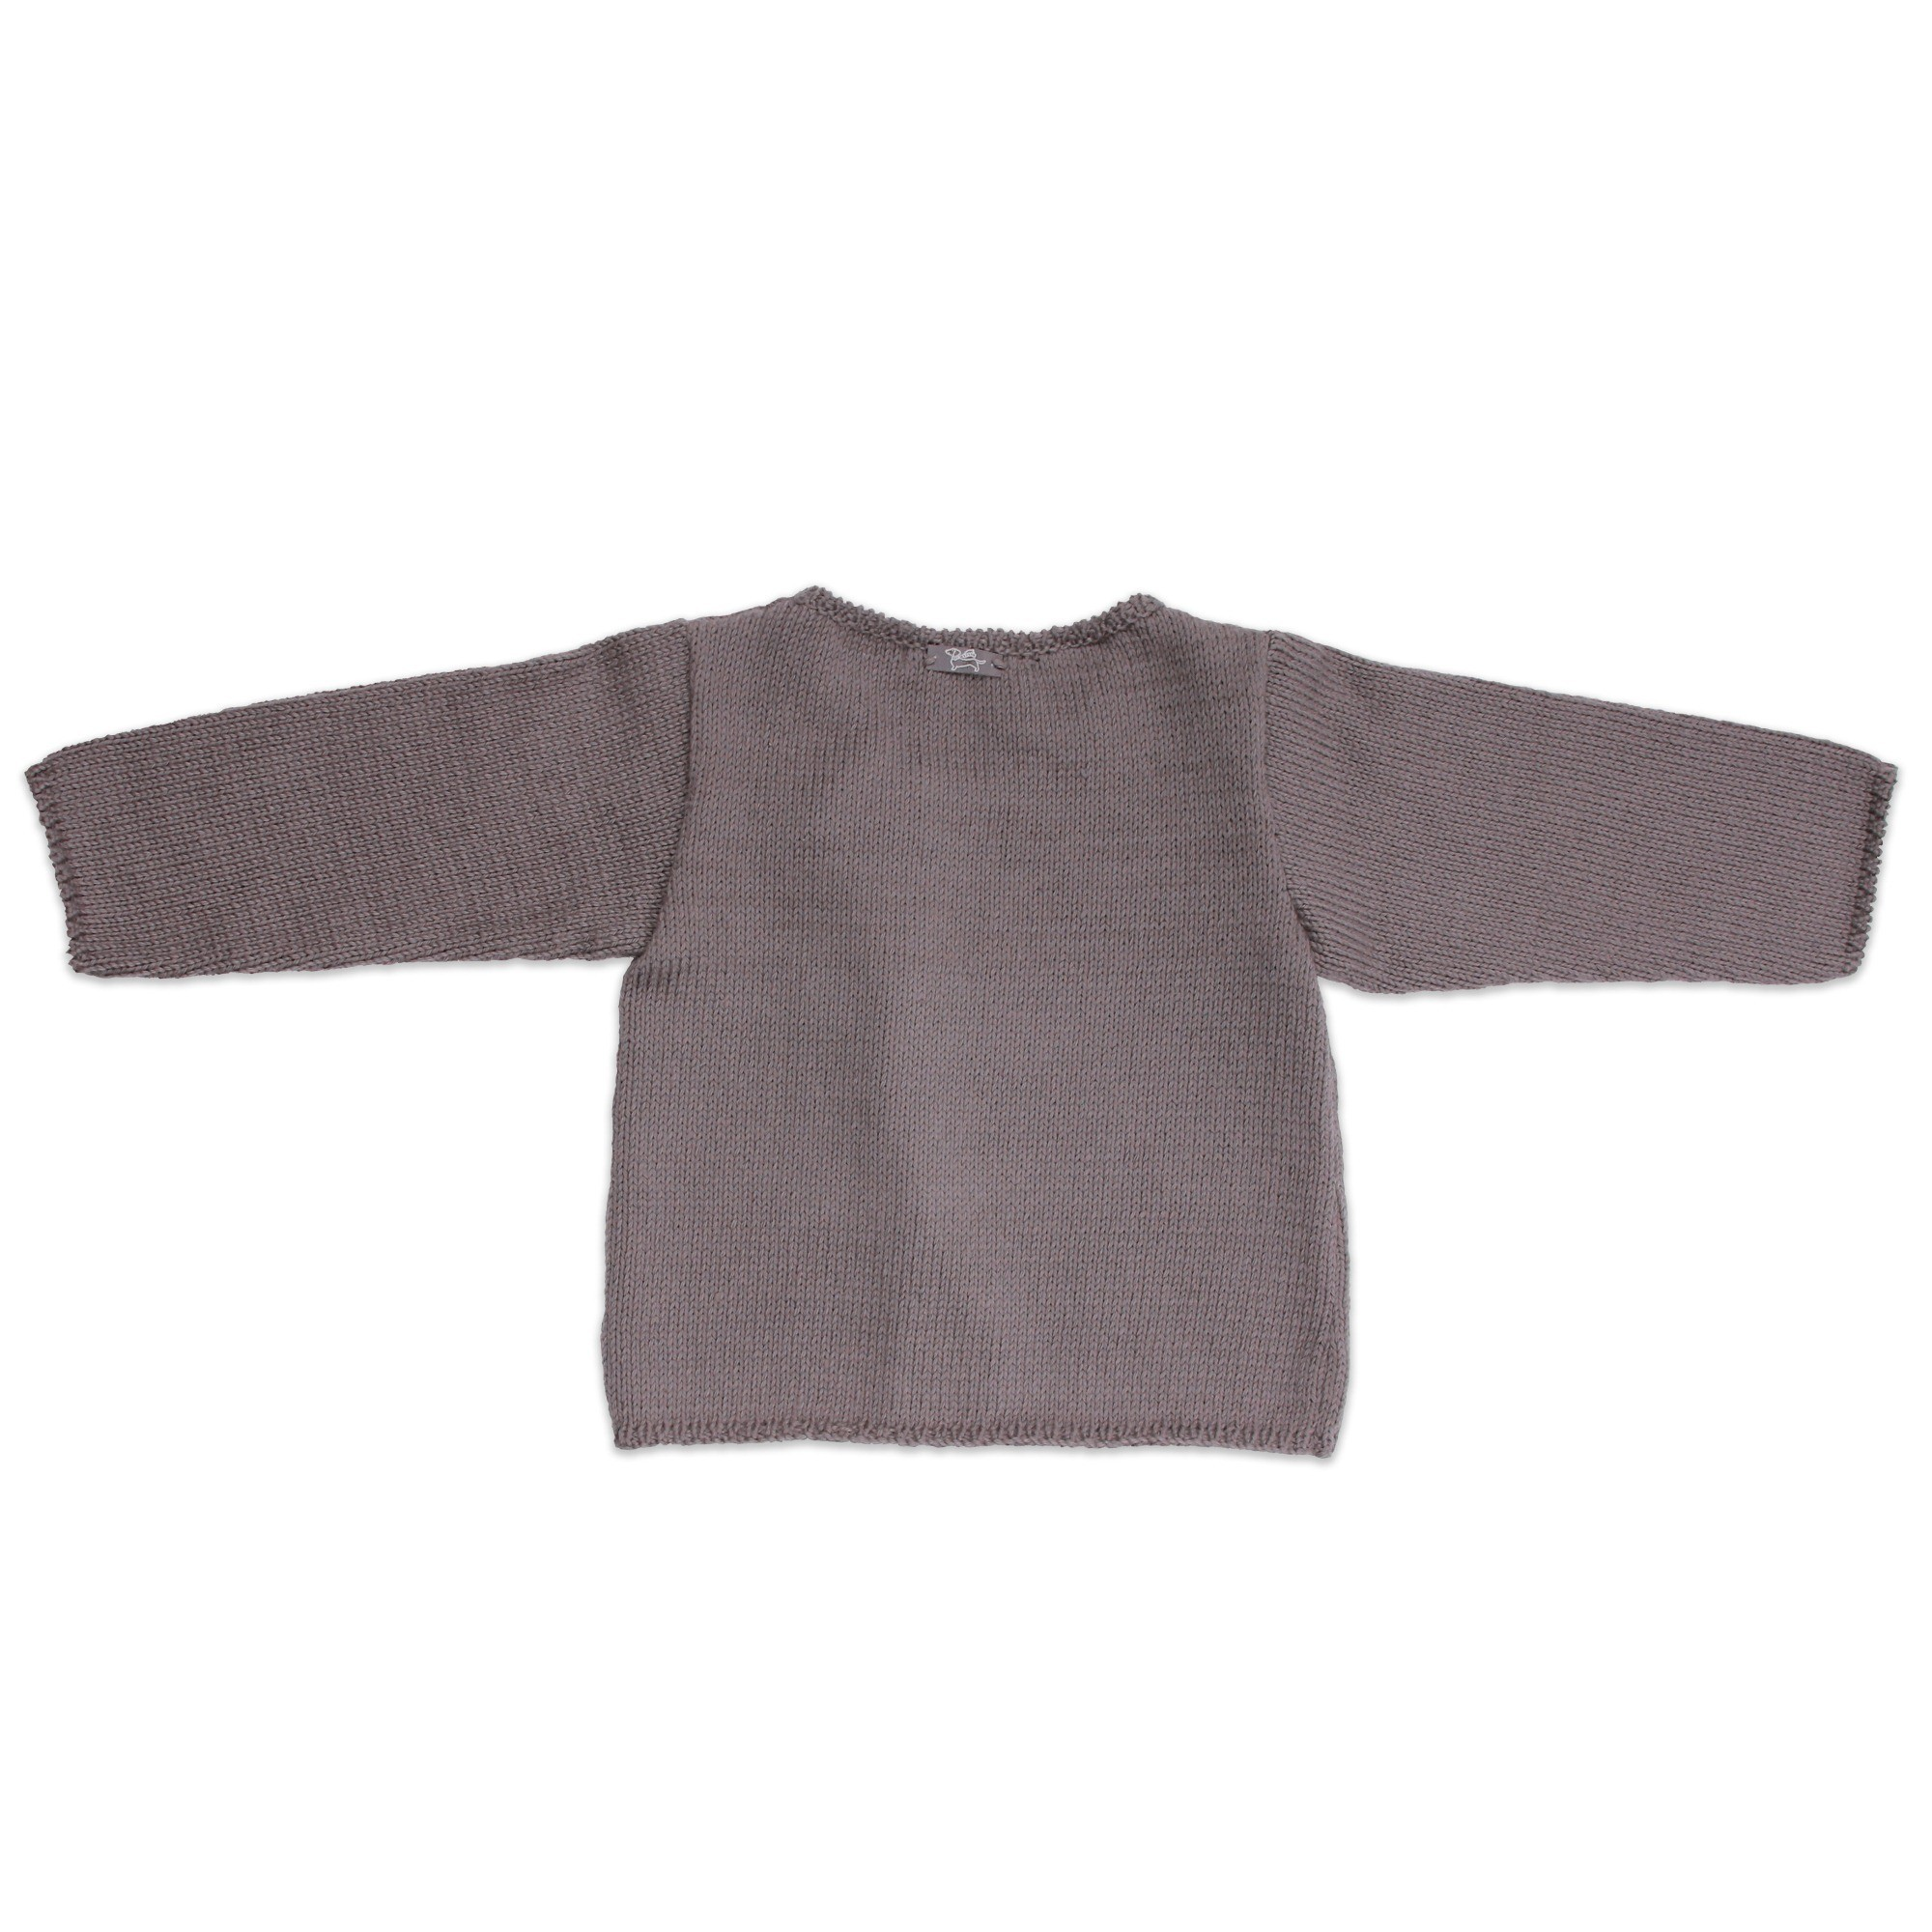 Dark grey baby cardigan knitted in stockinette stitch made from cotton and cashmere yarns -back